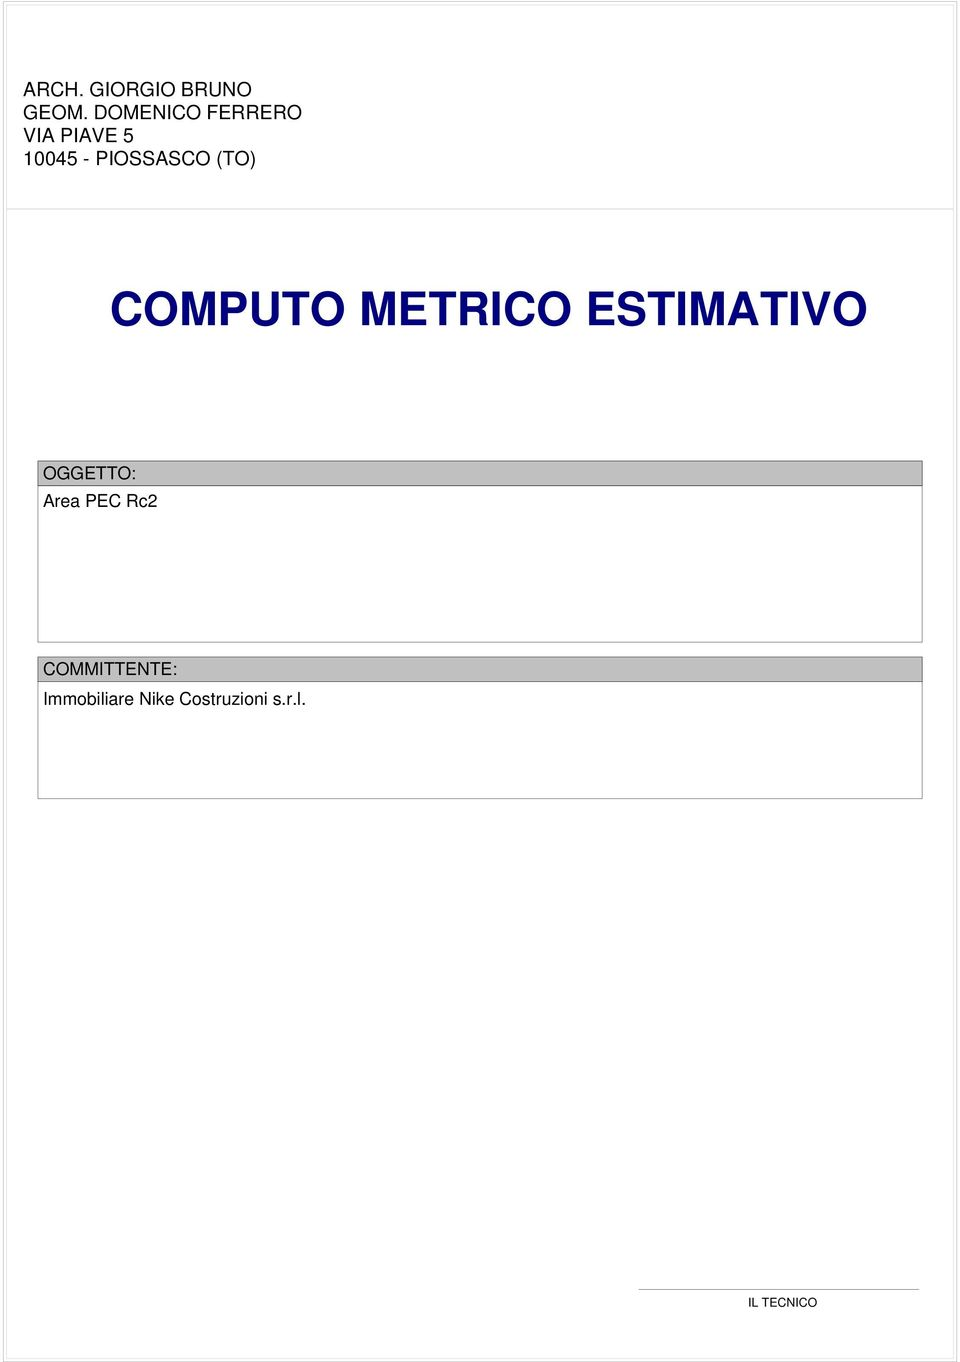 (TO) COMPUTO METRICO ESTIMATIVO OGGETTO: Area